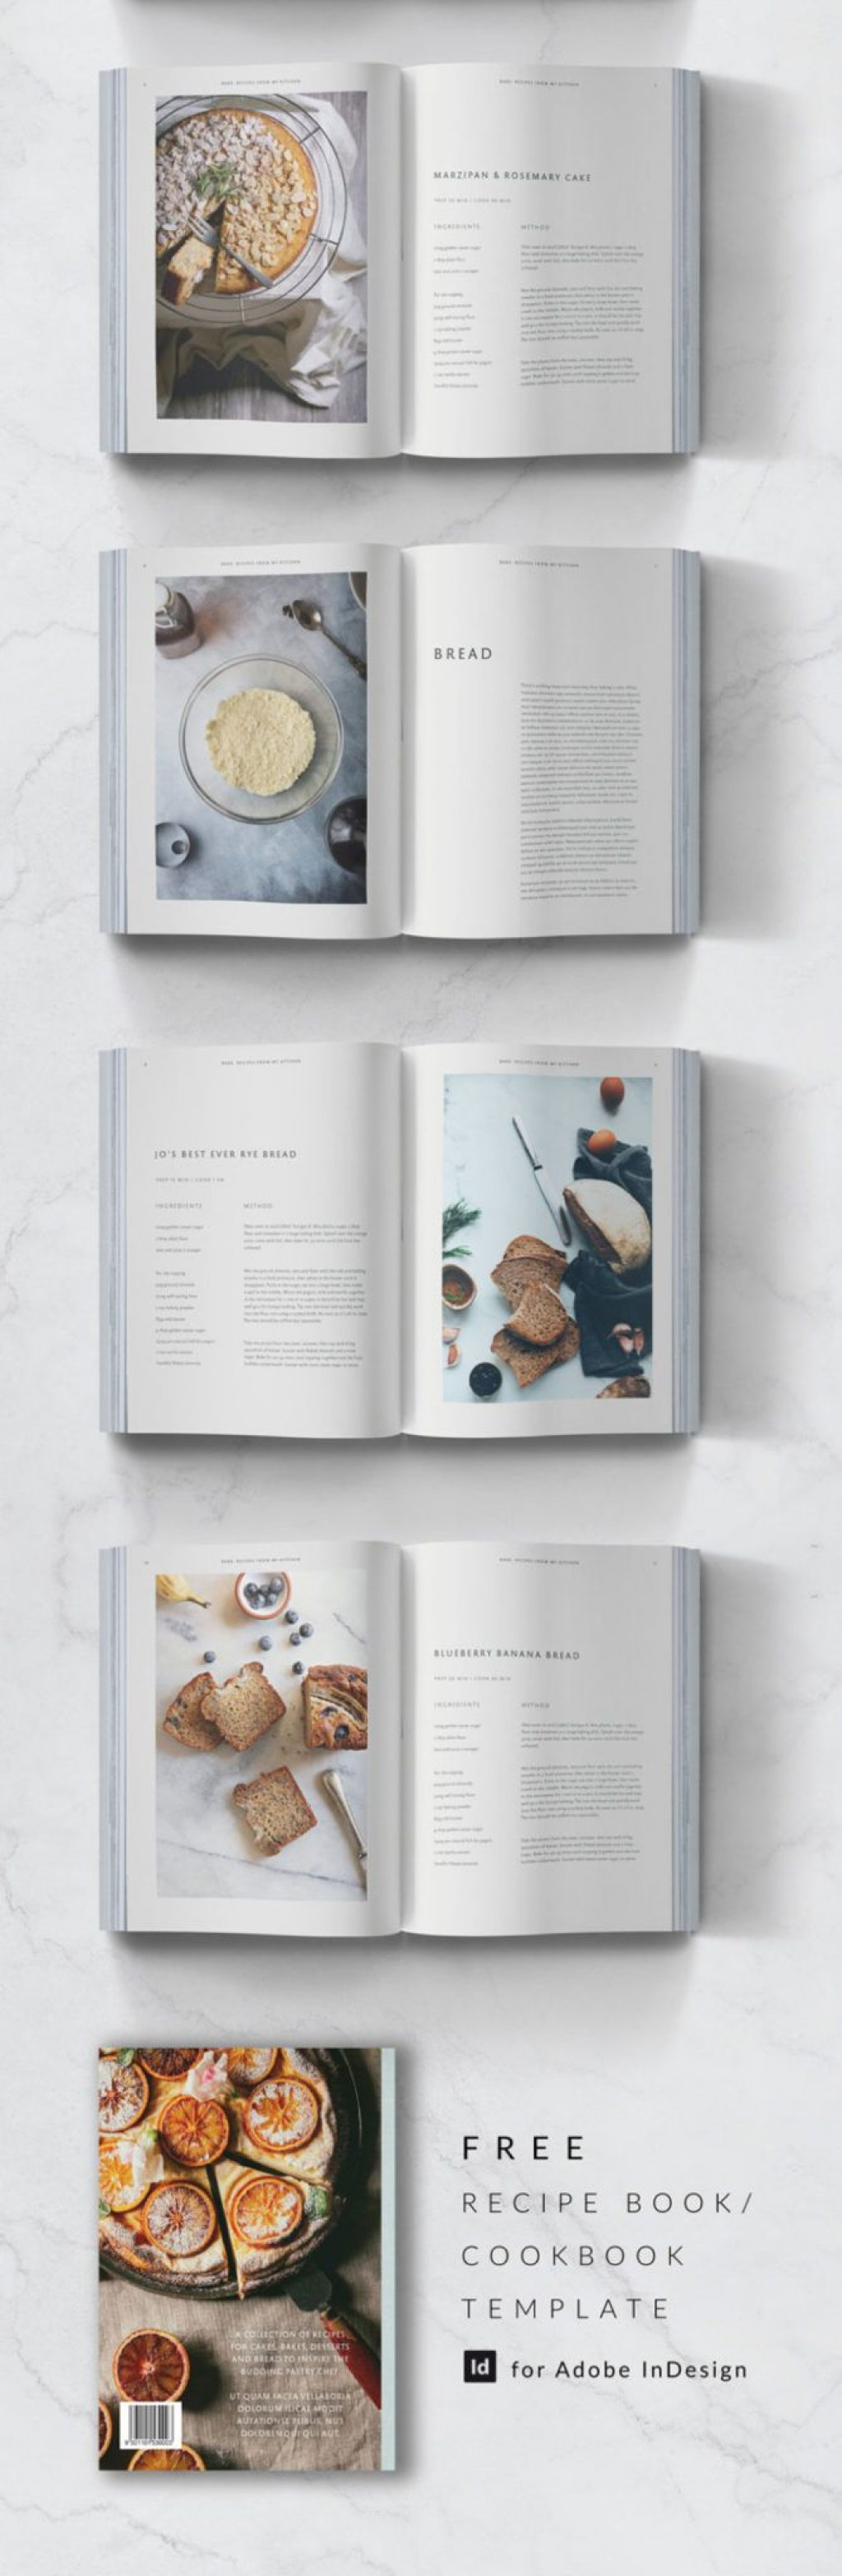 010 Awesome Free Recipe Book Template Example  Editable Cookbook For Microsoft Word IndesignLarge